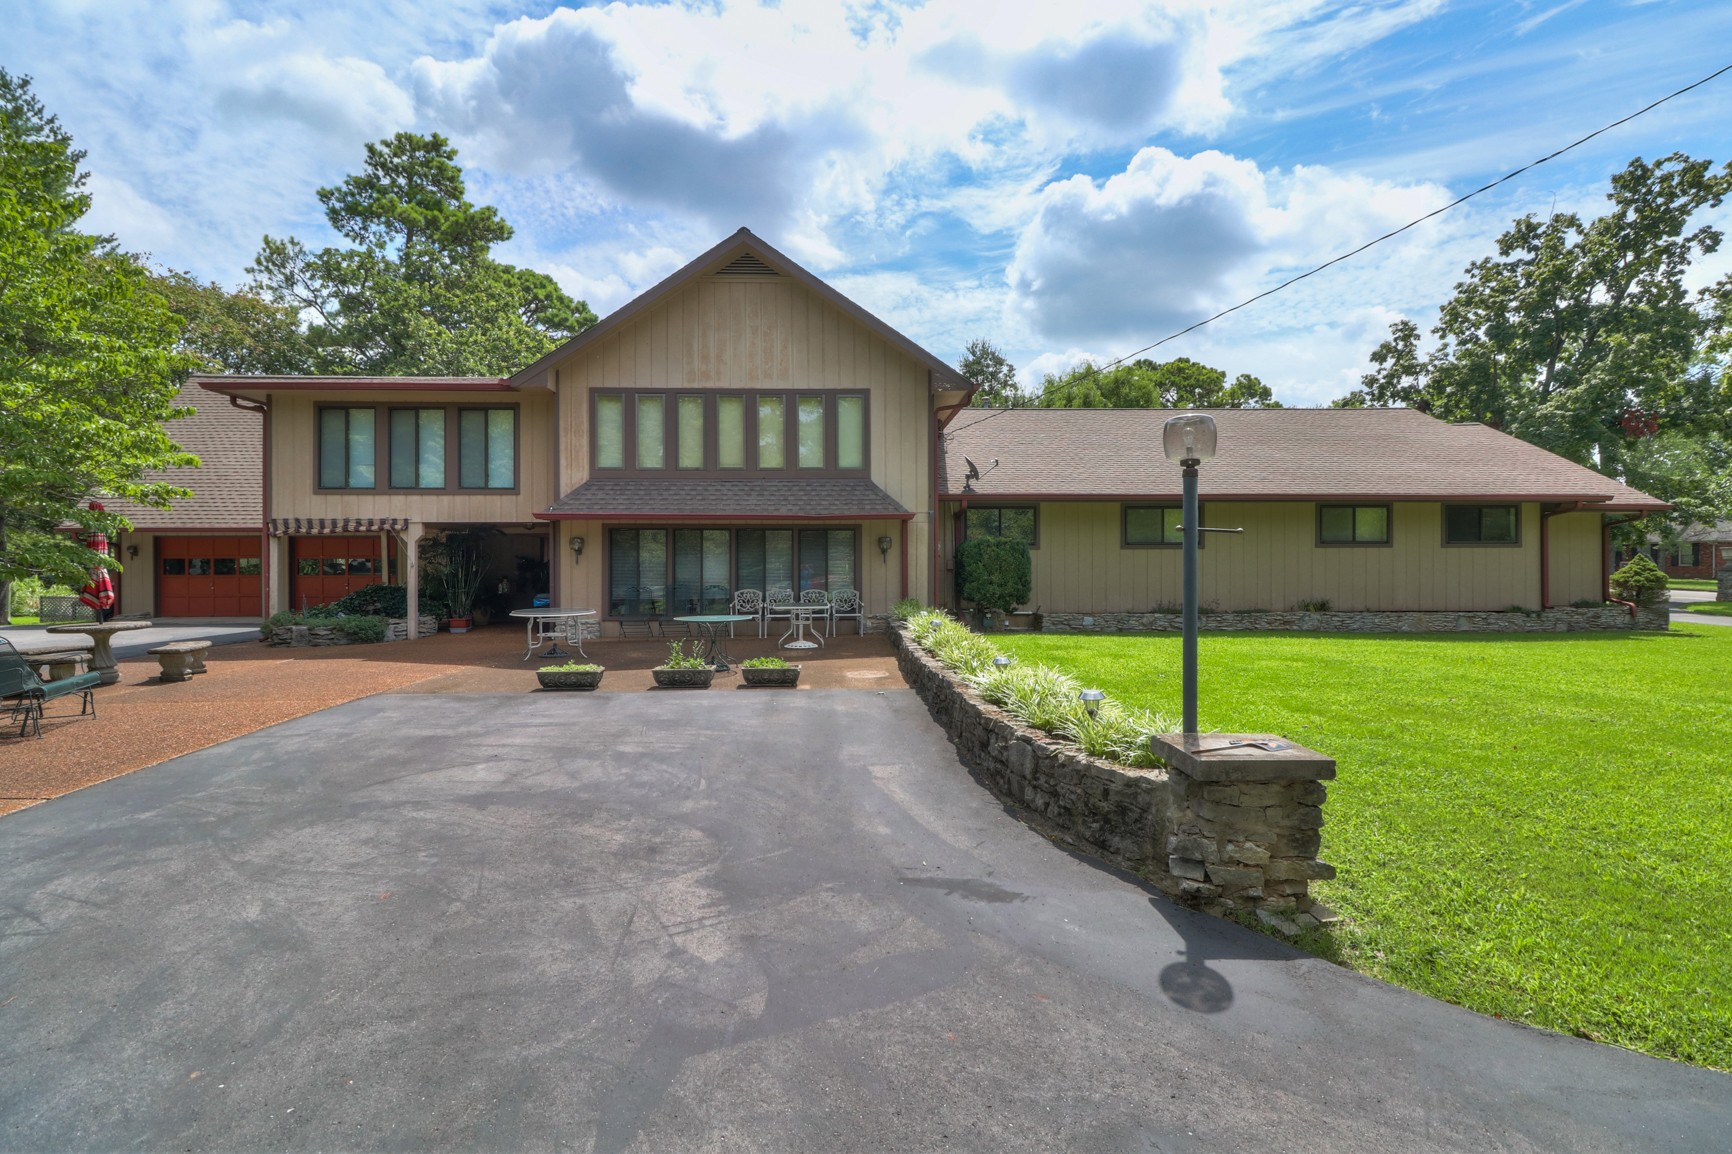 1426 Avon Rd Property Photo - Murfreesboro, TN real estate listing